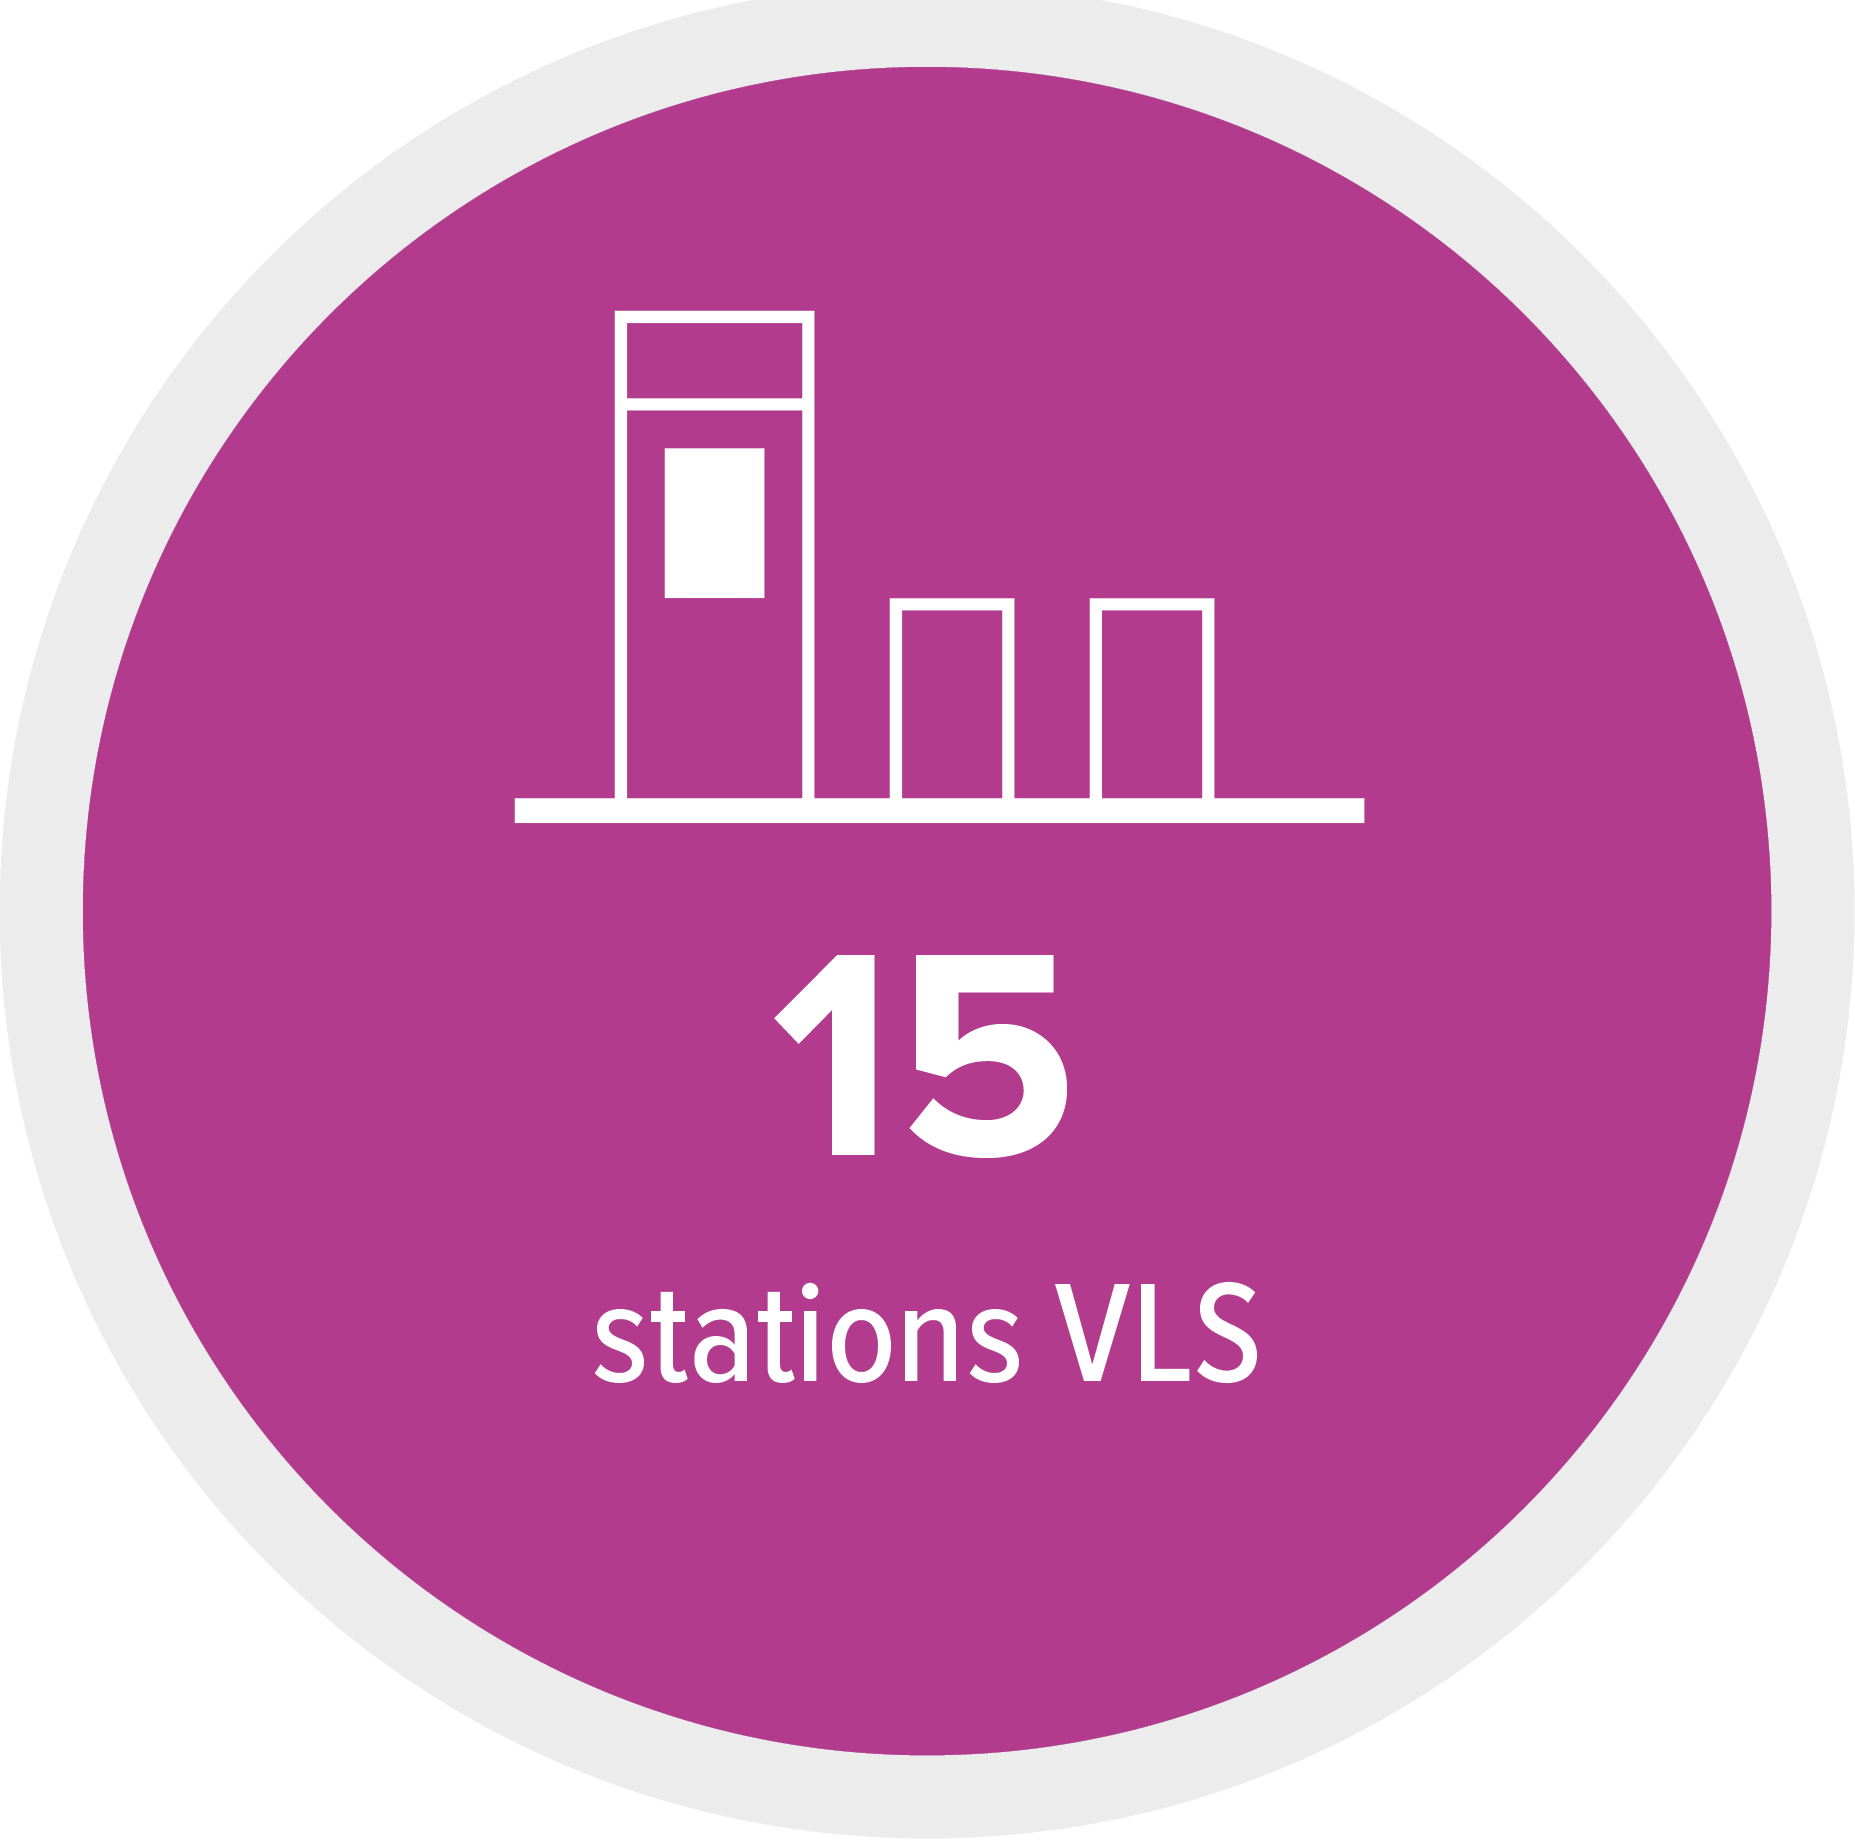 15 stations